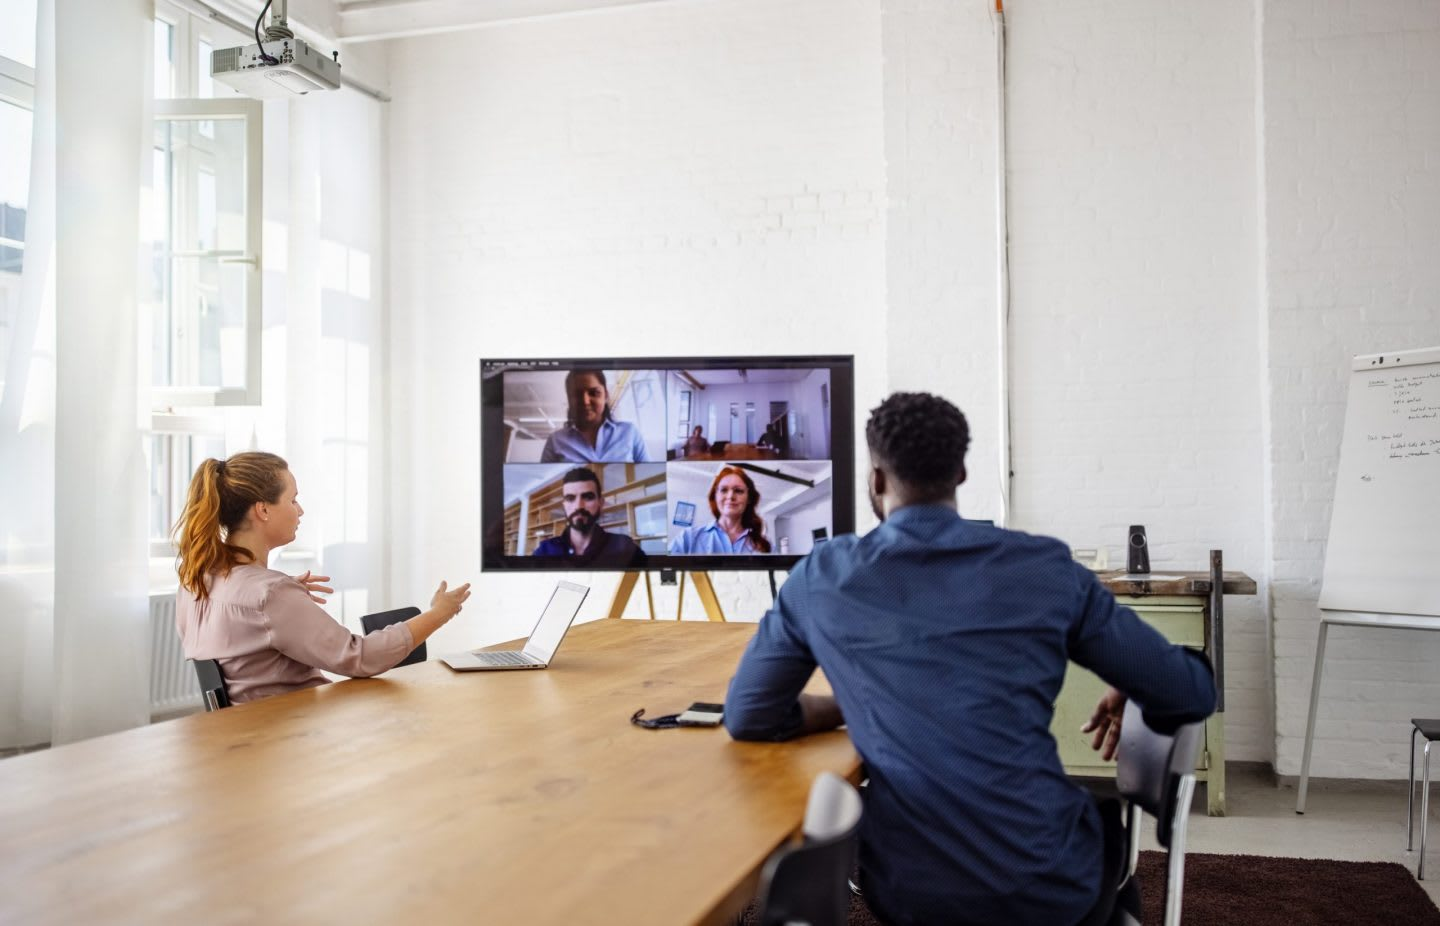 People sitting in a meeting room on a virtual call with participants, meeting, collaboration, work, discussion